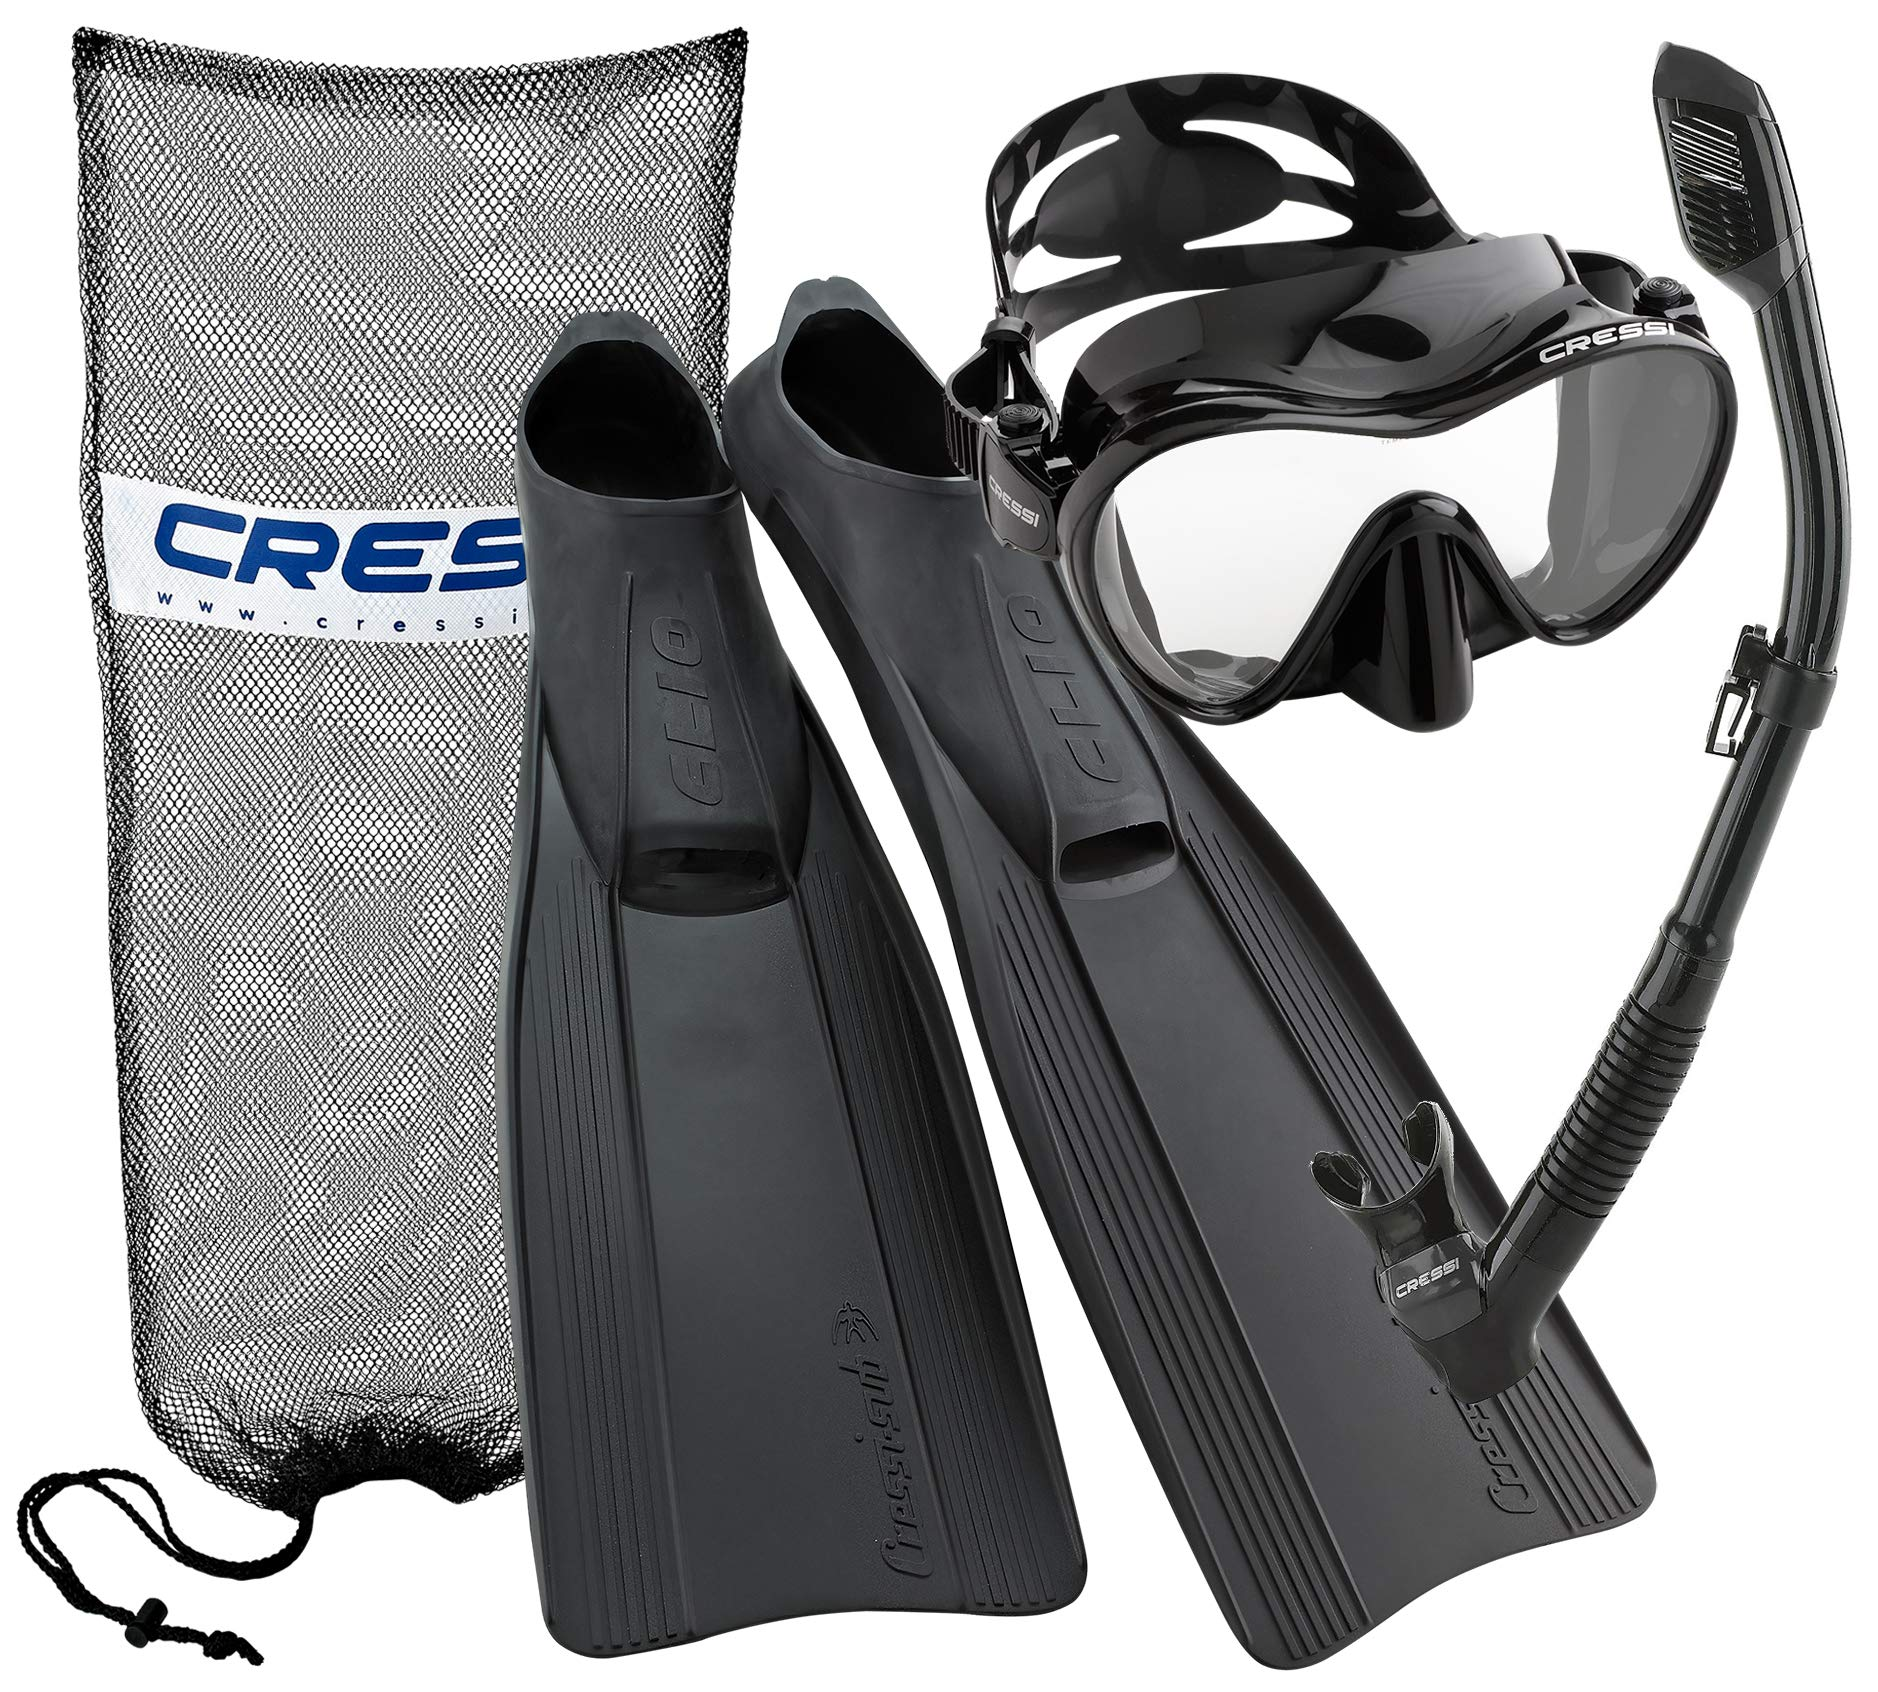 Cressi Clio Full Foot Fin Frameless Mask Dry Snorkel Set with Carry Bag, Black, Size 5.5/6.5-Size 39/40 by Cressi